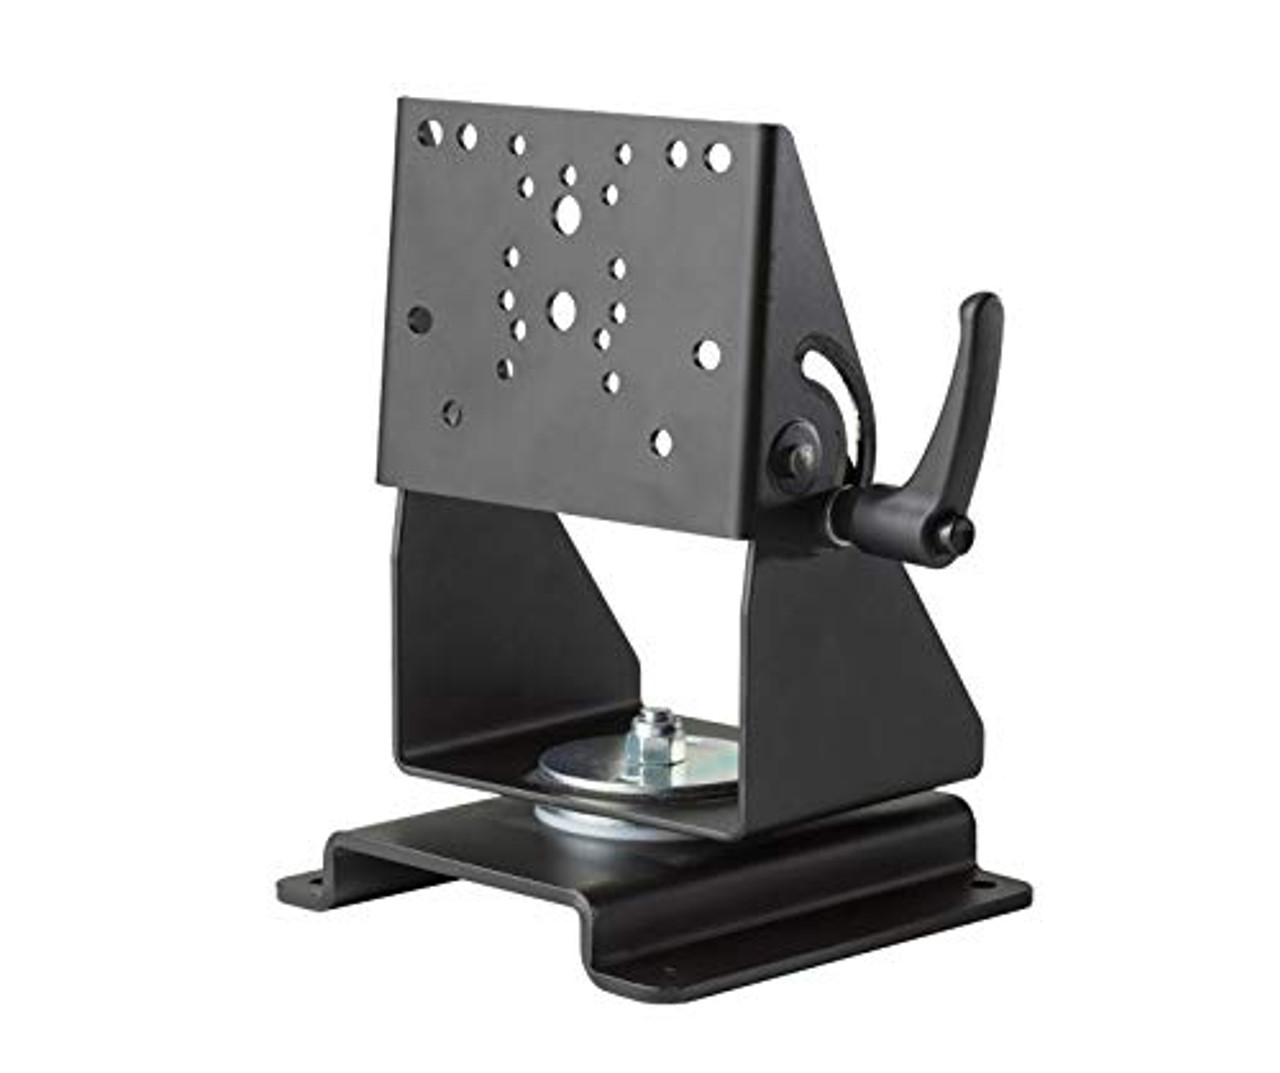 Tall TILT/Swivel Desktop Mount (Includes DS-56 Base, 7160-0776 Tall Clevis) (7170-0585) | 0414XL2PBE0